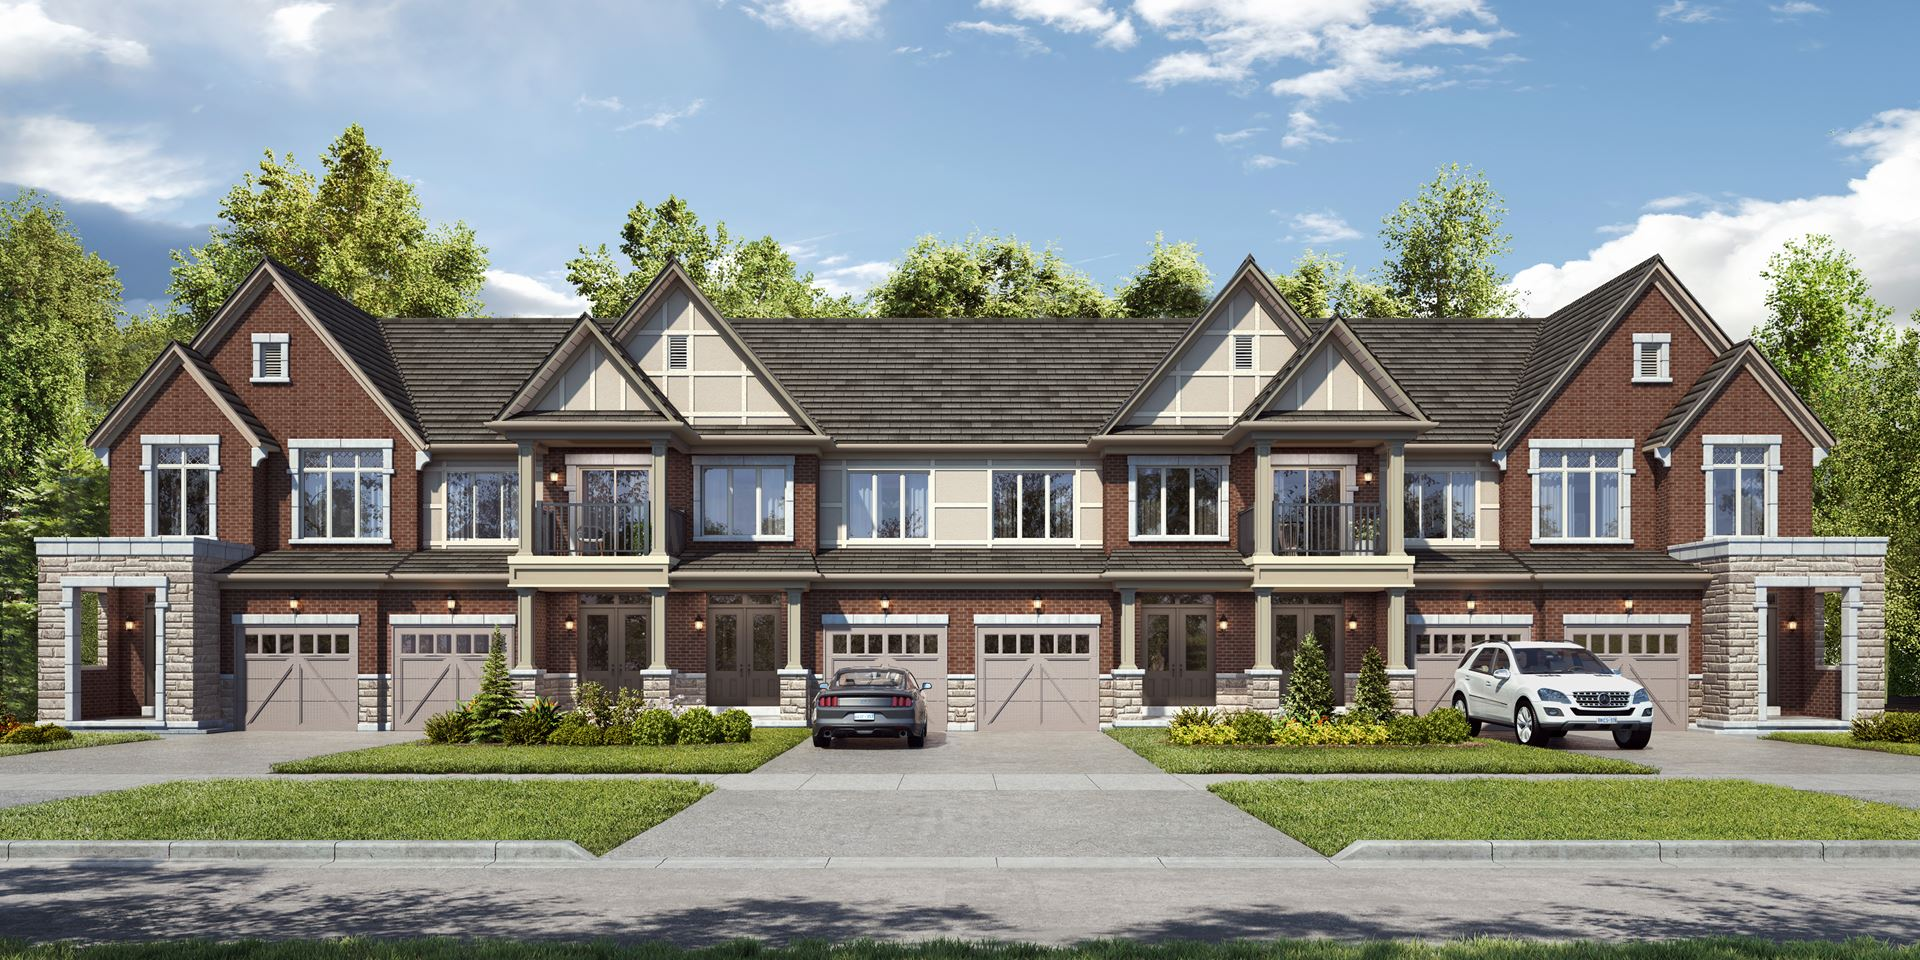 Rendering of Union Village Traditional townhome streetscape.